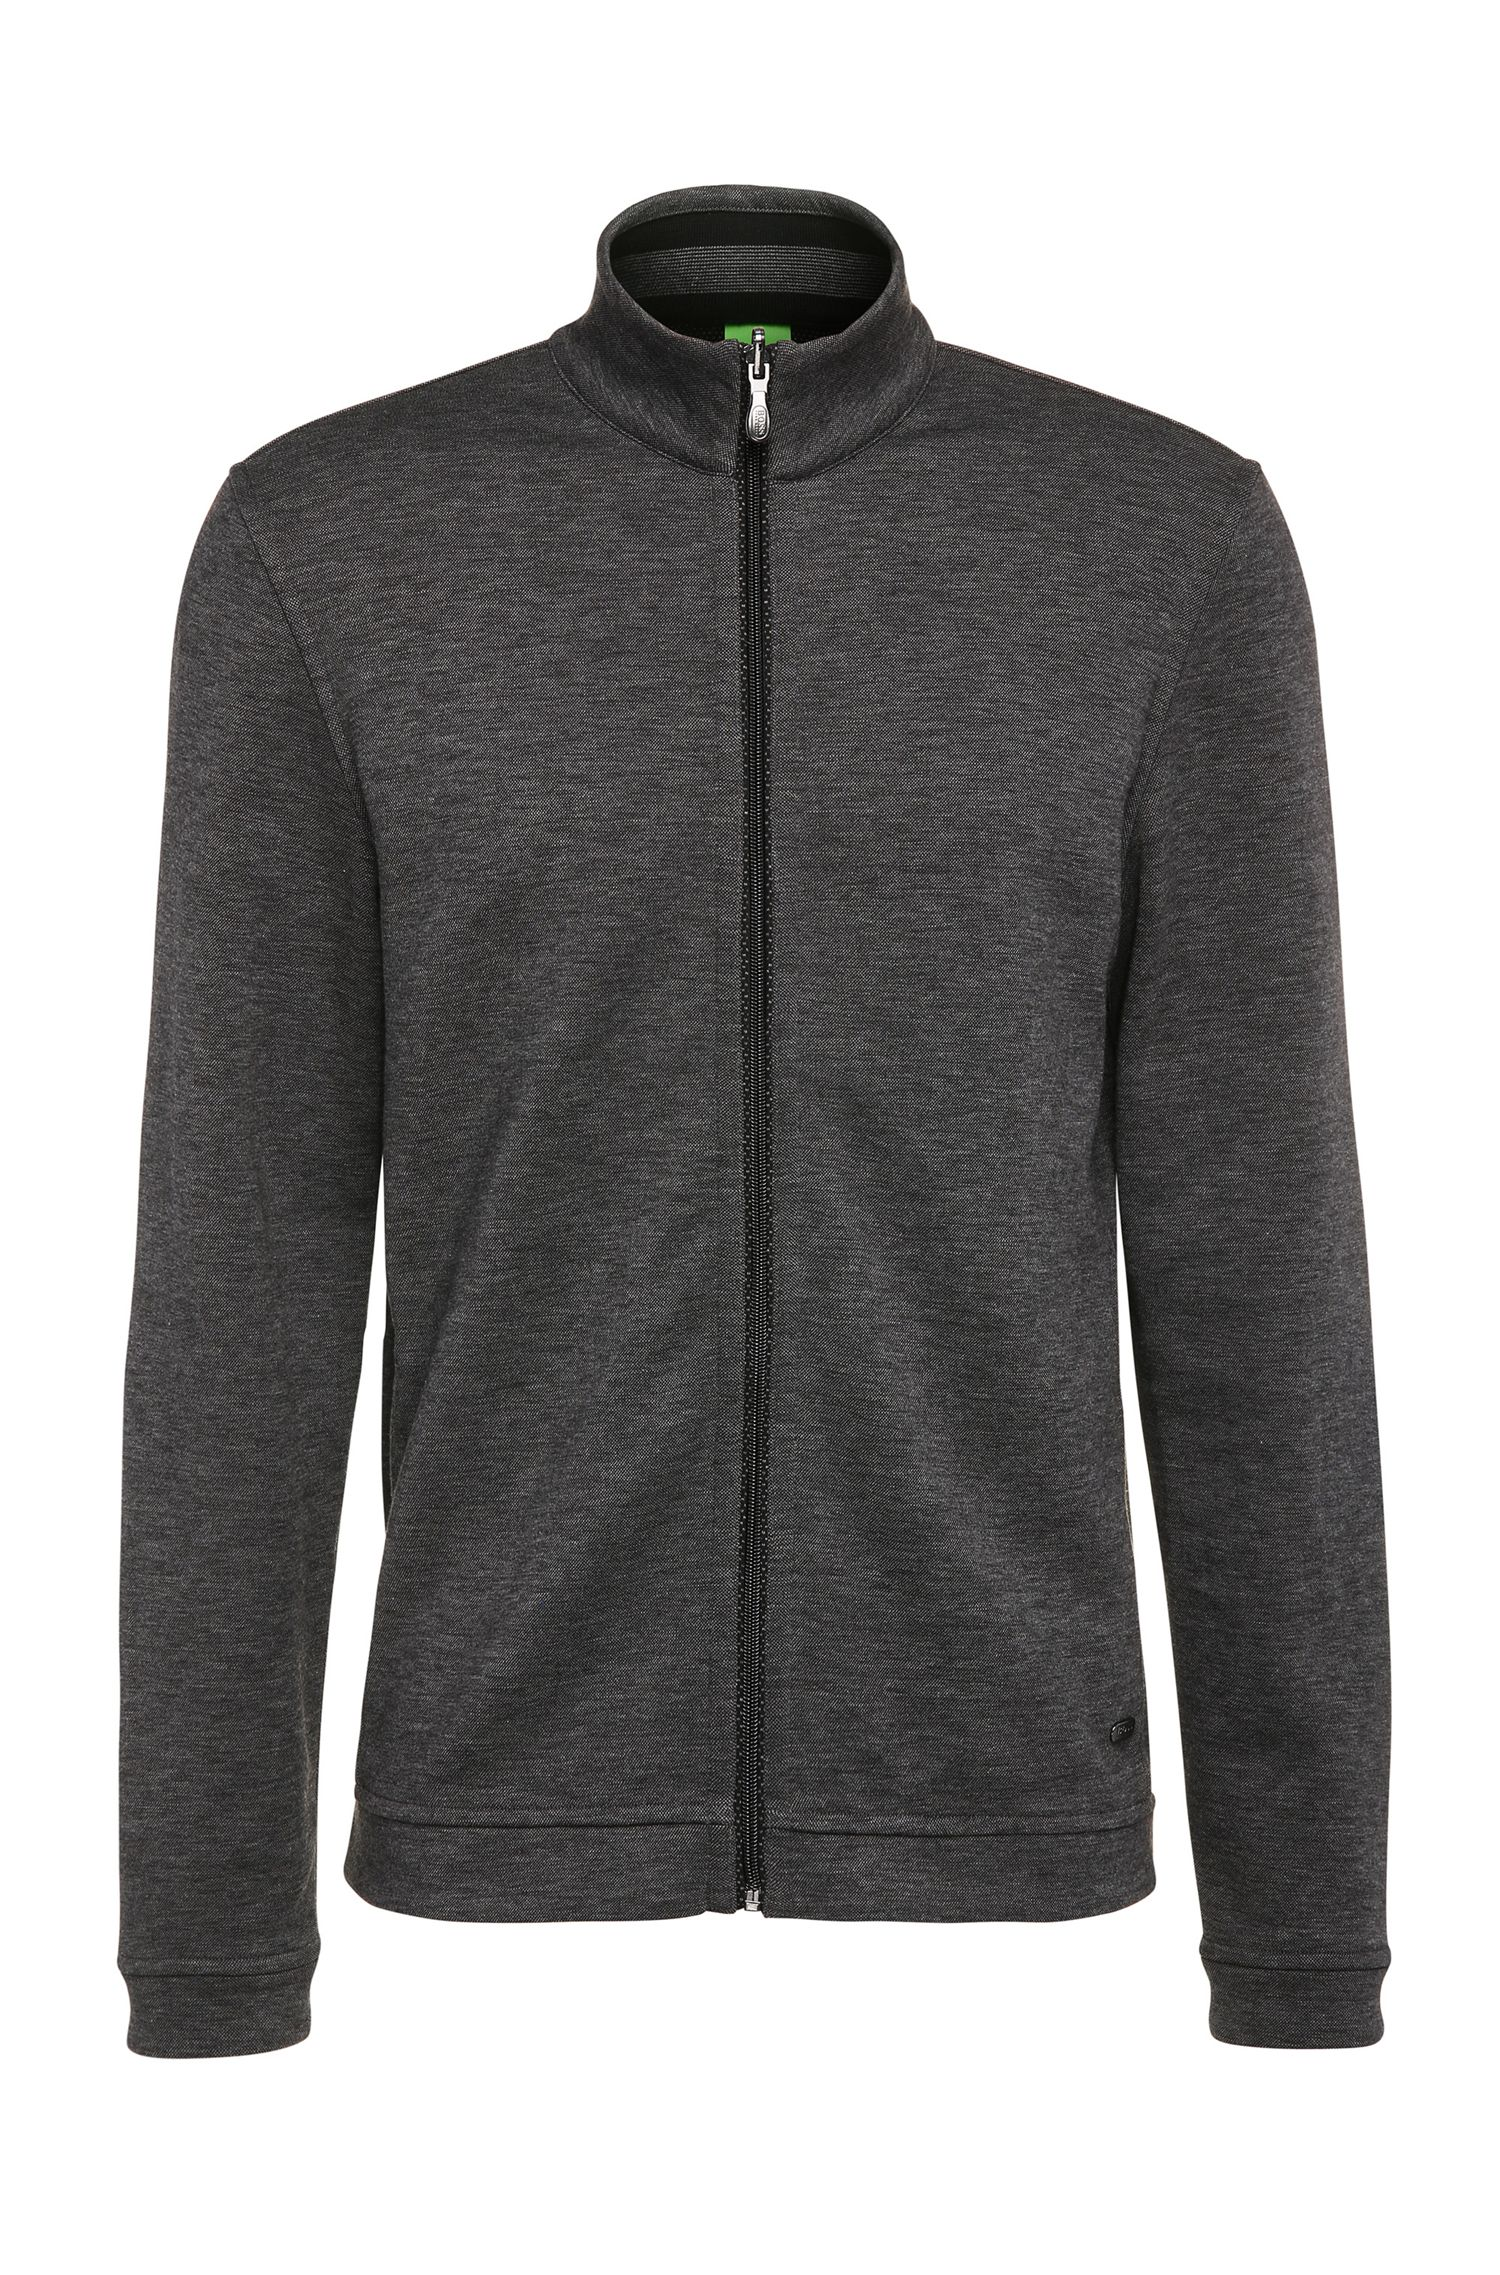 Regular-Fit Sweatshirt-Jacke aus meliertem Baumwoll-Mix: ´C-Fossa`